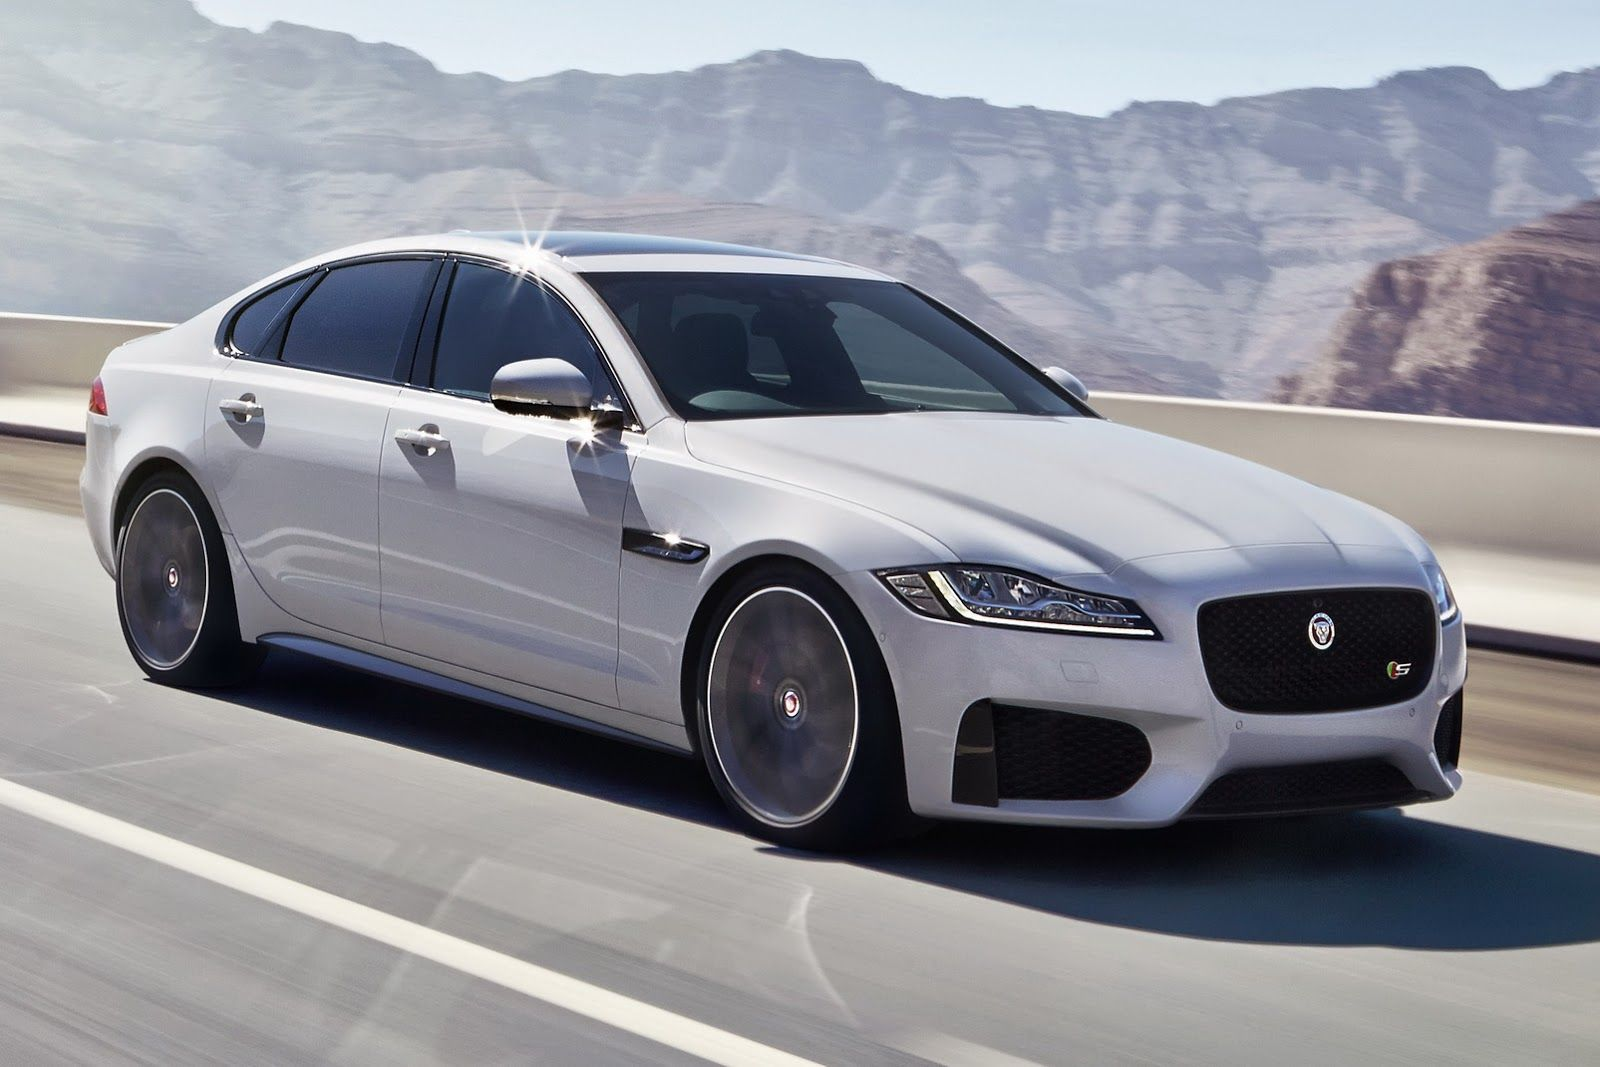 Jaguar S 2016 Xf May Be All New But It Looks Overly Familiar